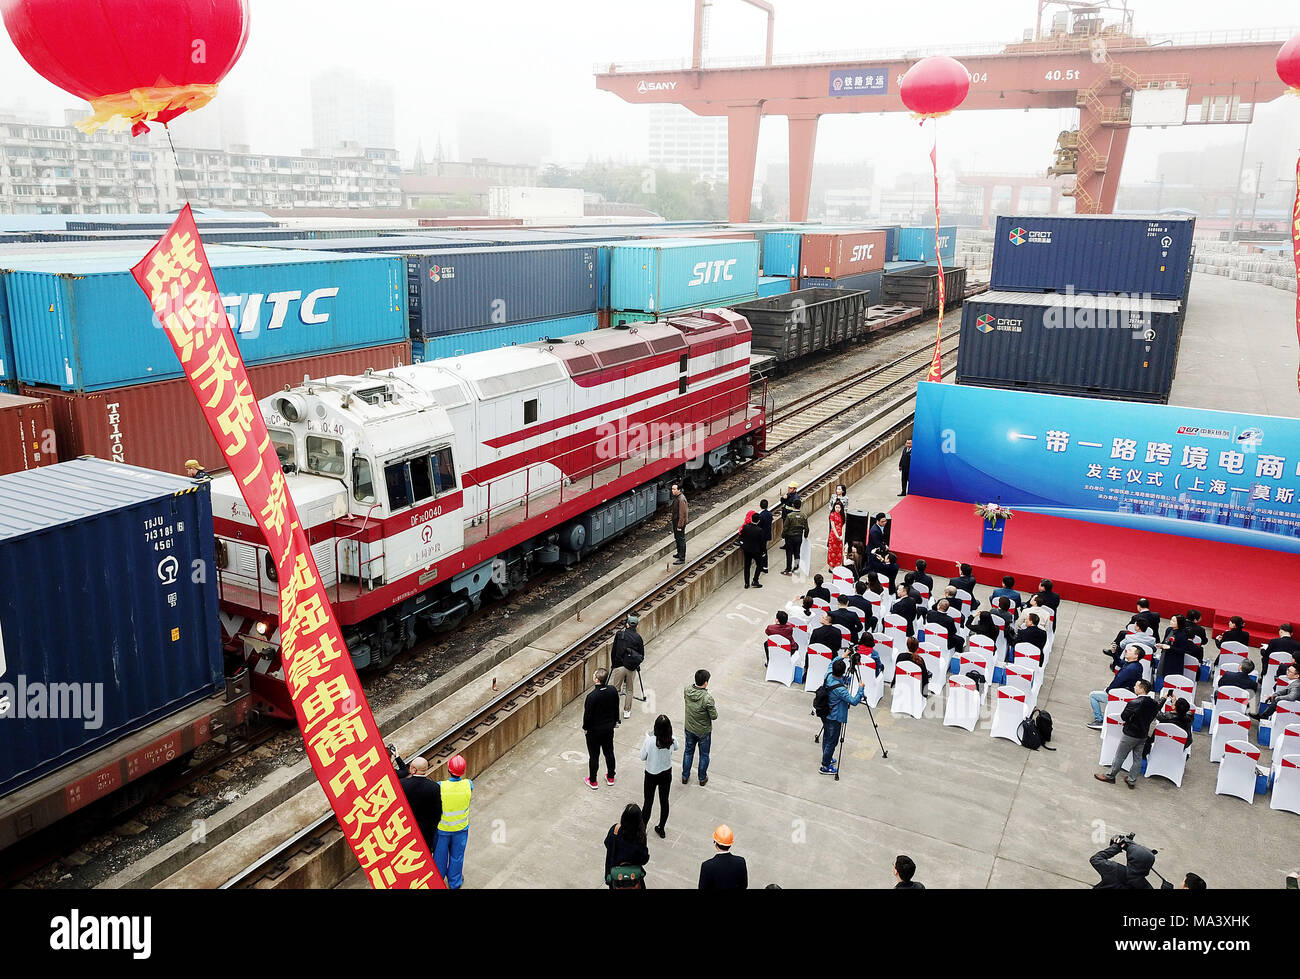 Shanghai, China  30th Mar, 2018  A departure ceremony of